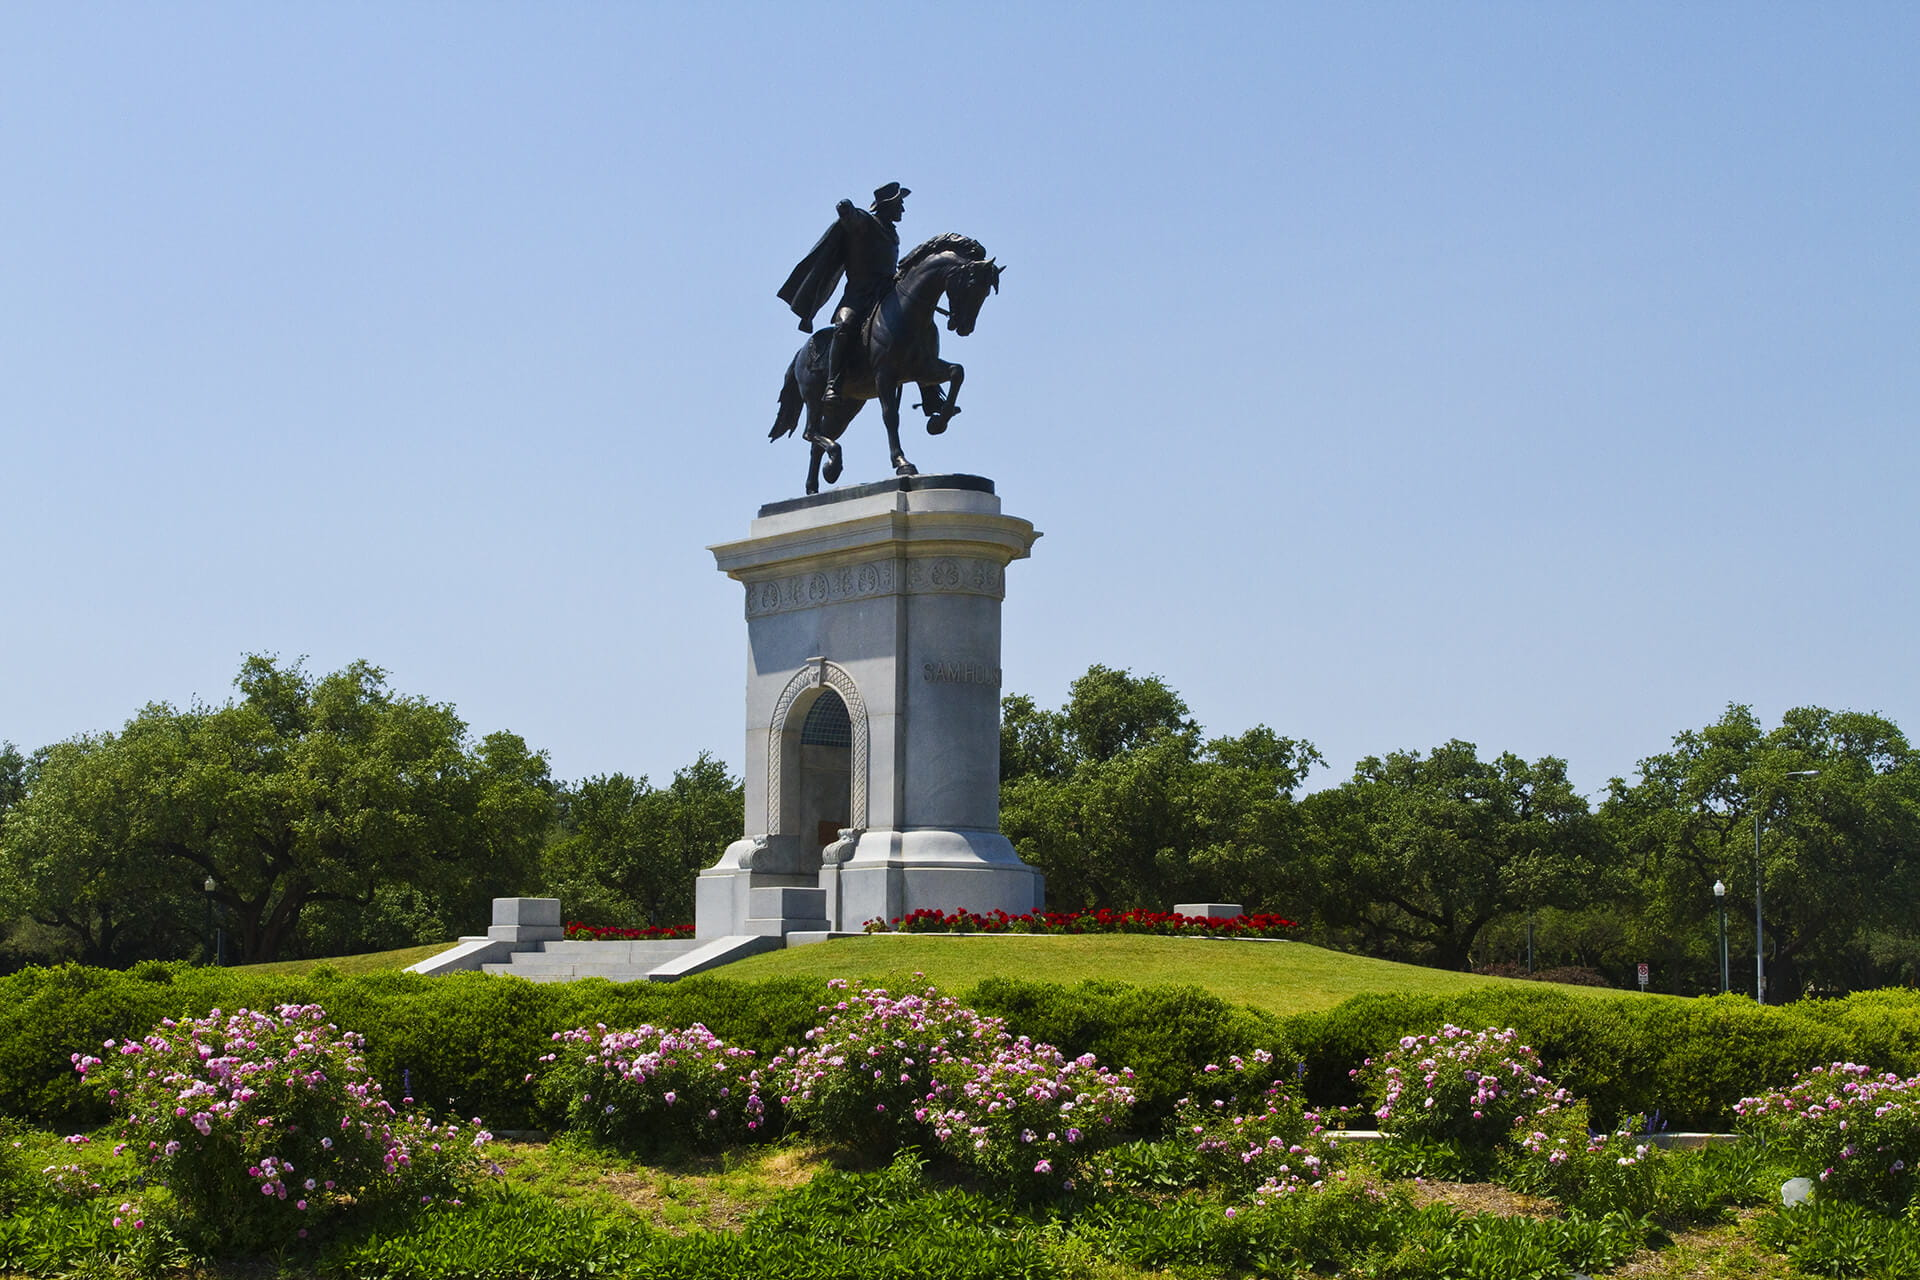 Sam Houston Statue in Houston, Texas